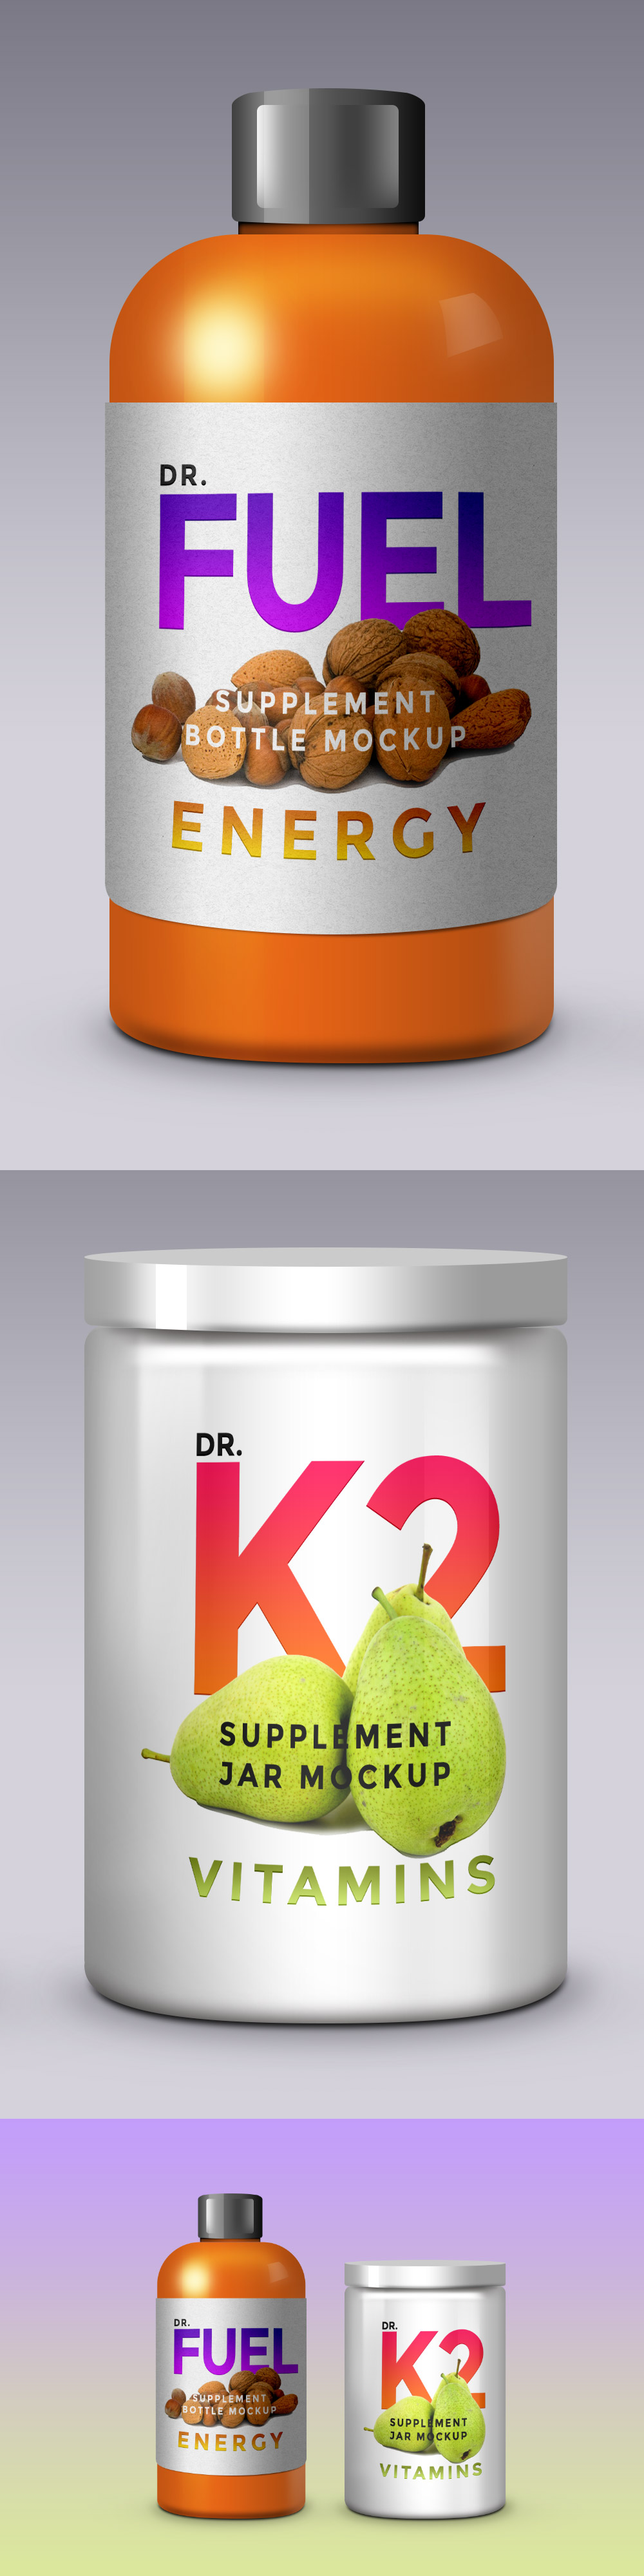 Supplement Product Packaging Mockups-PSD